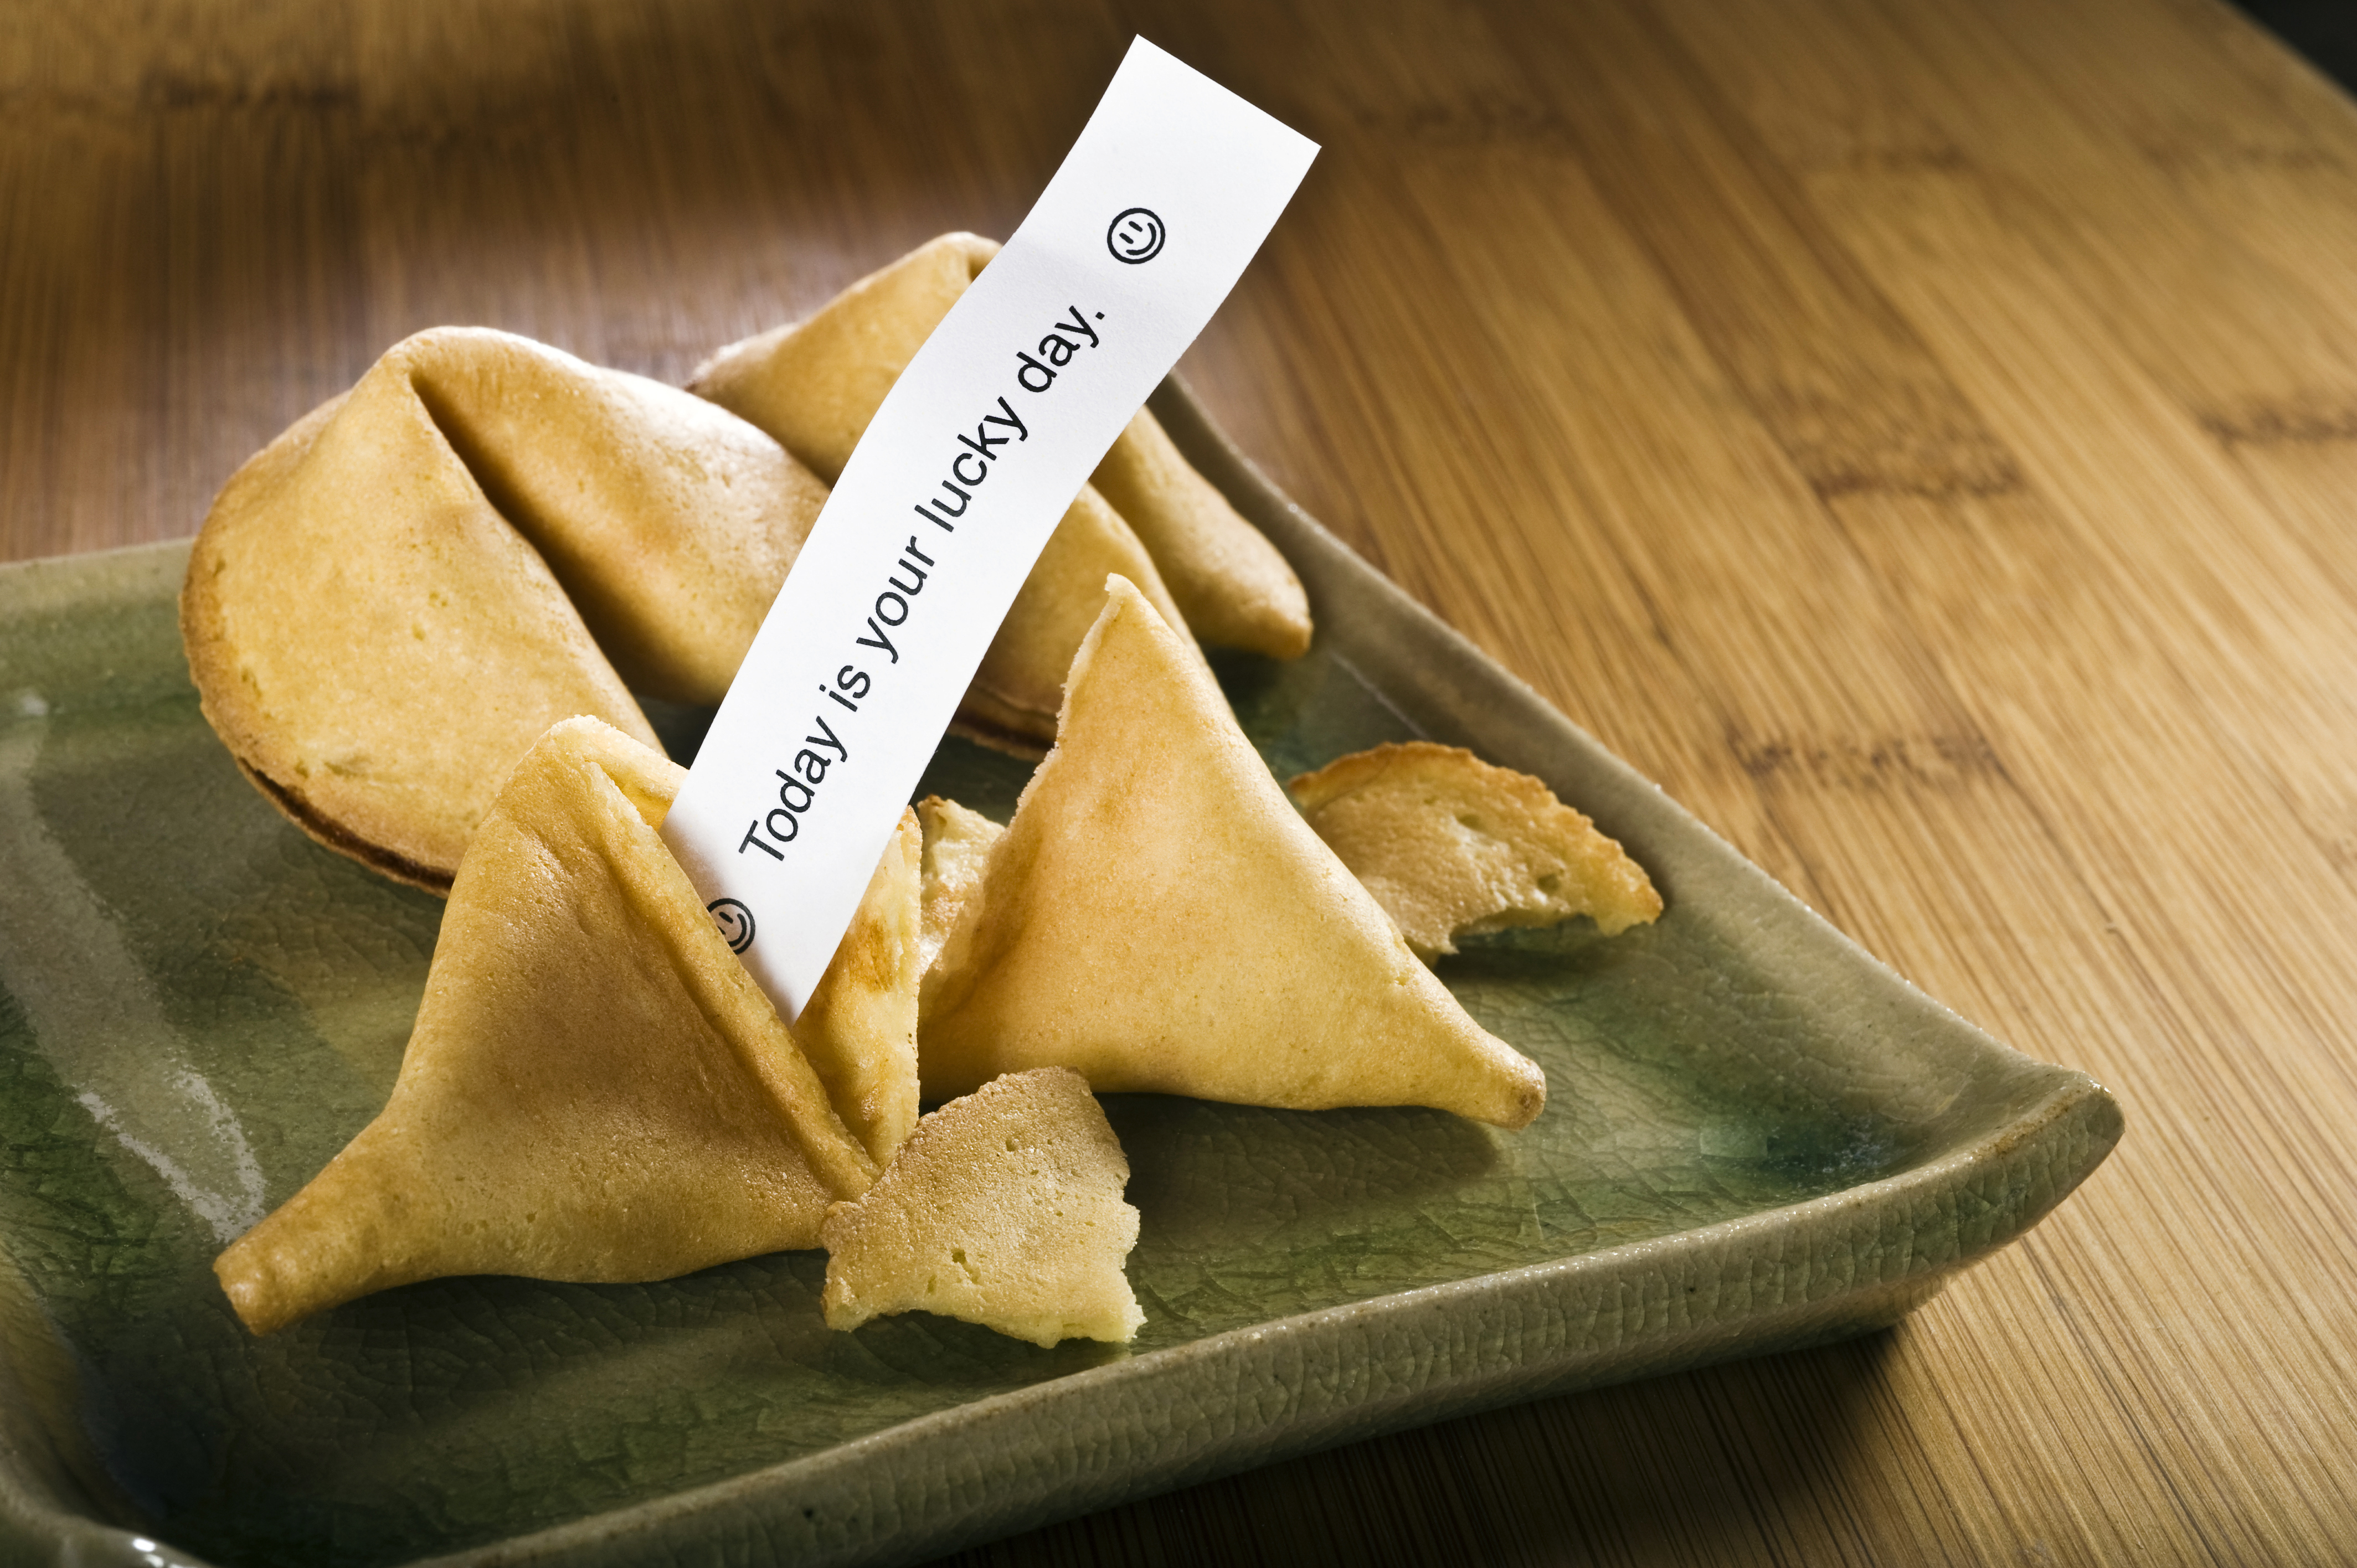 Fortune Cookies in China